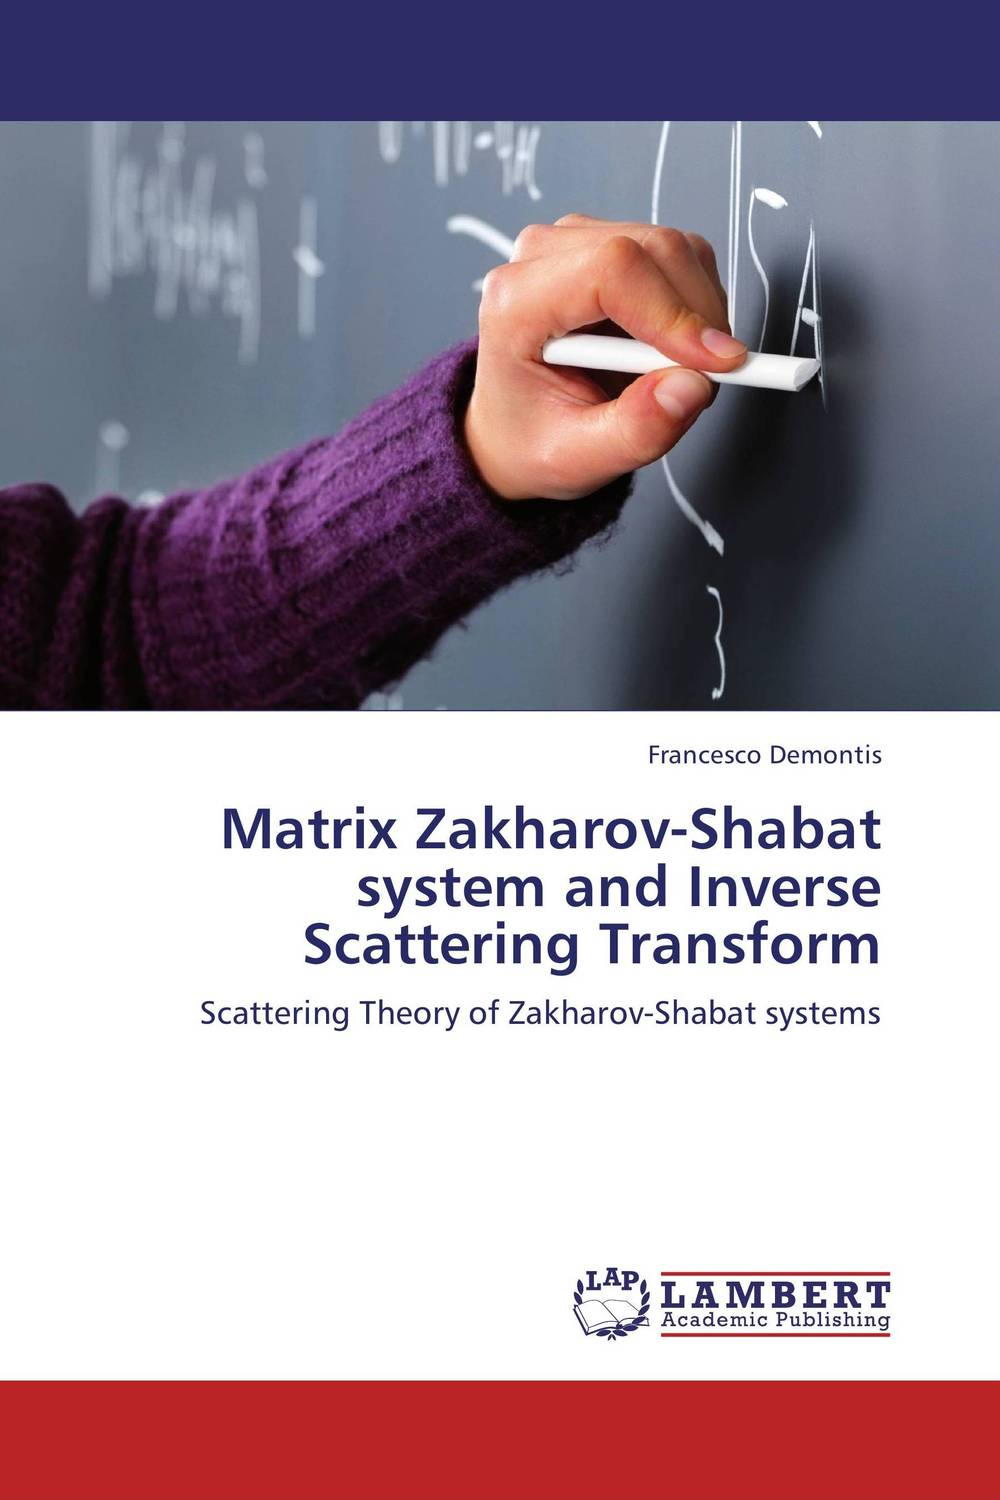 Matrix Zakharov-Shabat system and Inverse Scattering Transform soliton solutions